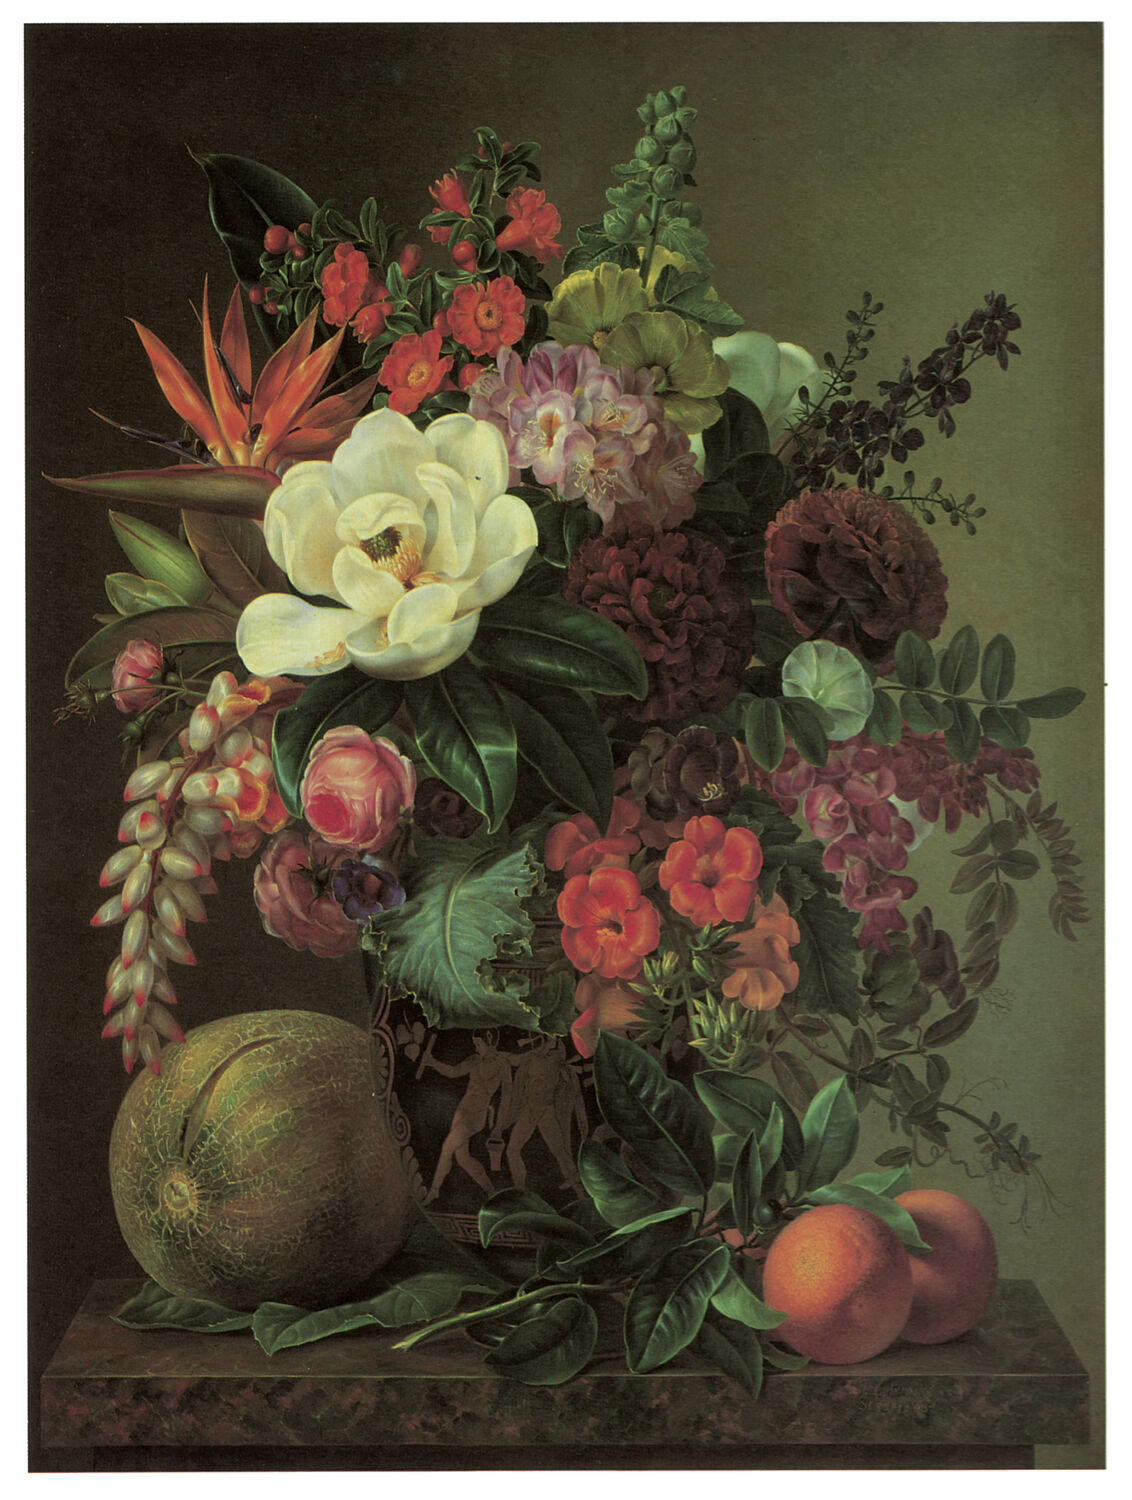 1224 Fruits and Flowers Art Decoration POSTER.Graphics to decorate home office.